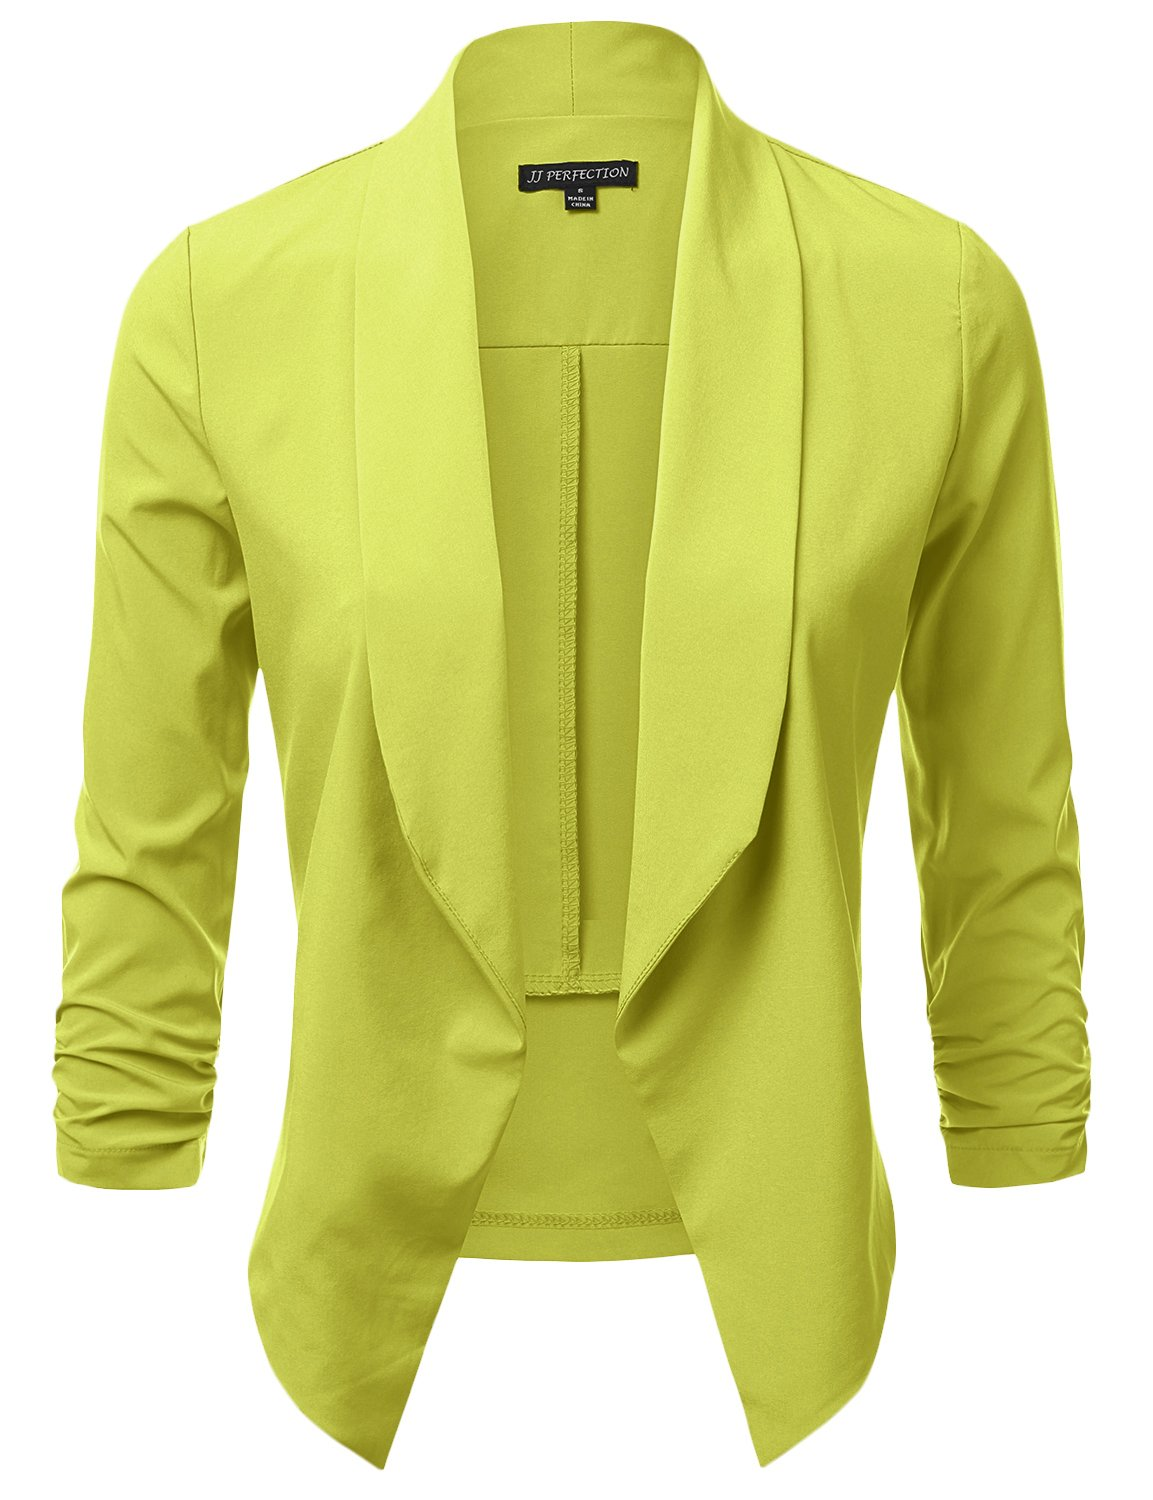 JJ Perfection Women's Lightweight Chiffon Ruched Sleeve Open-Front Blazer Lime S